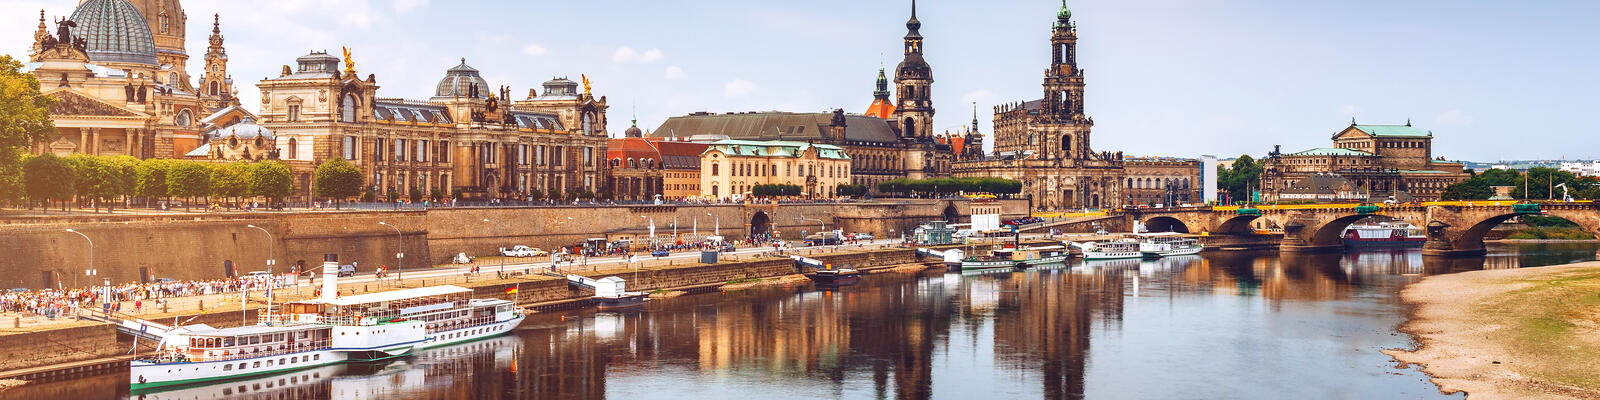 Dresden City Showcasing Elbe River and Augustus Bridge in Germany (Photo: DaLiu/Shutterstock)